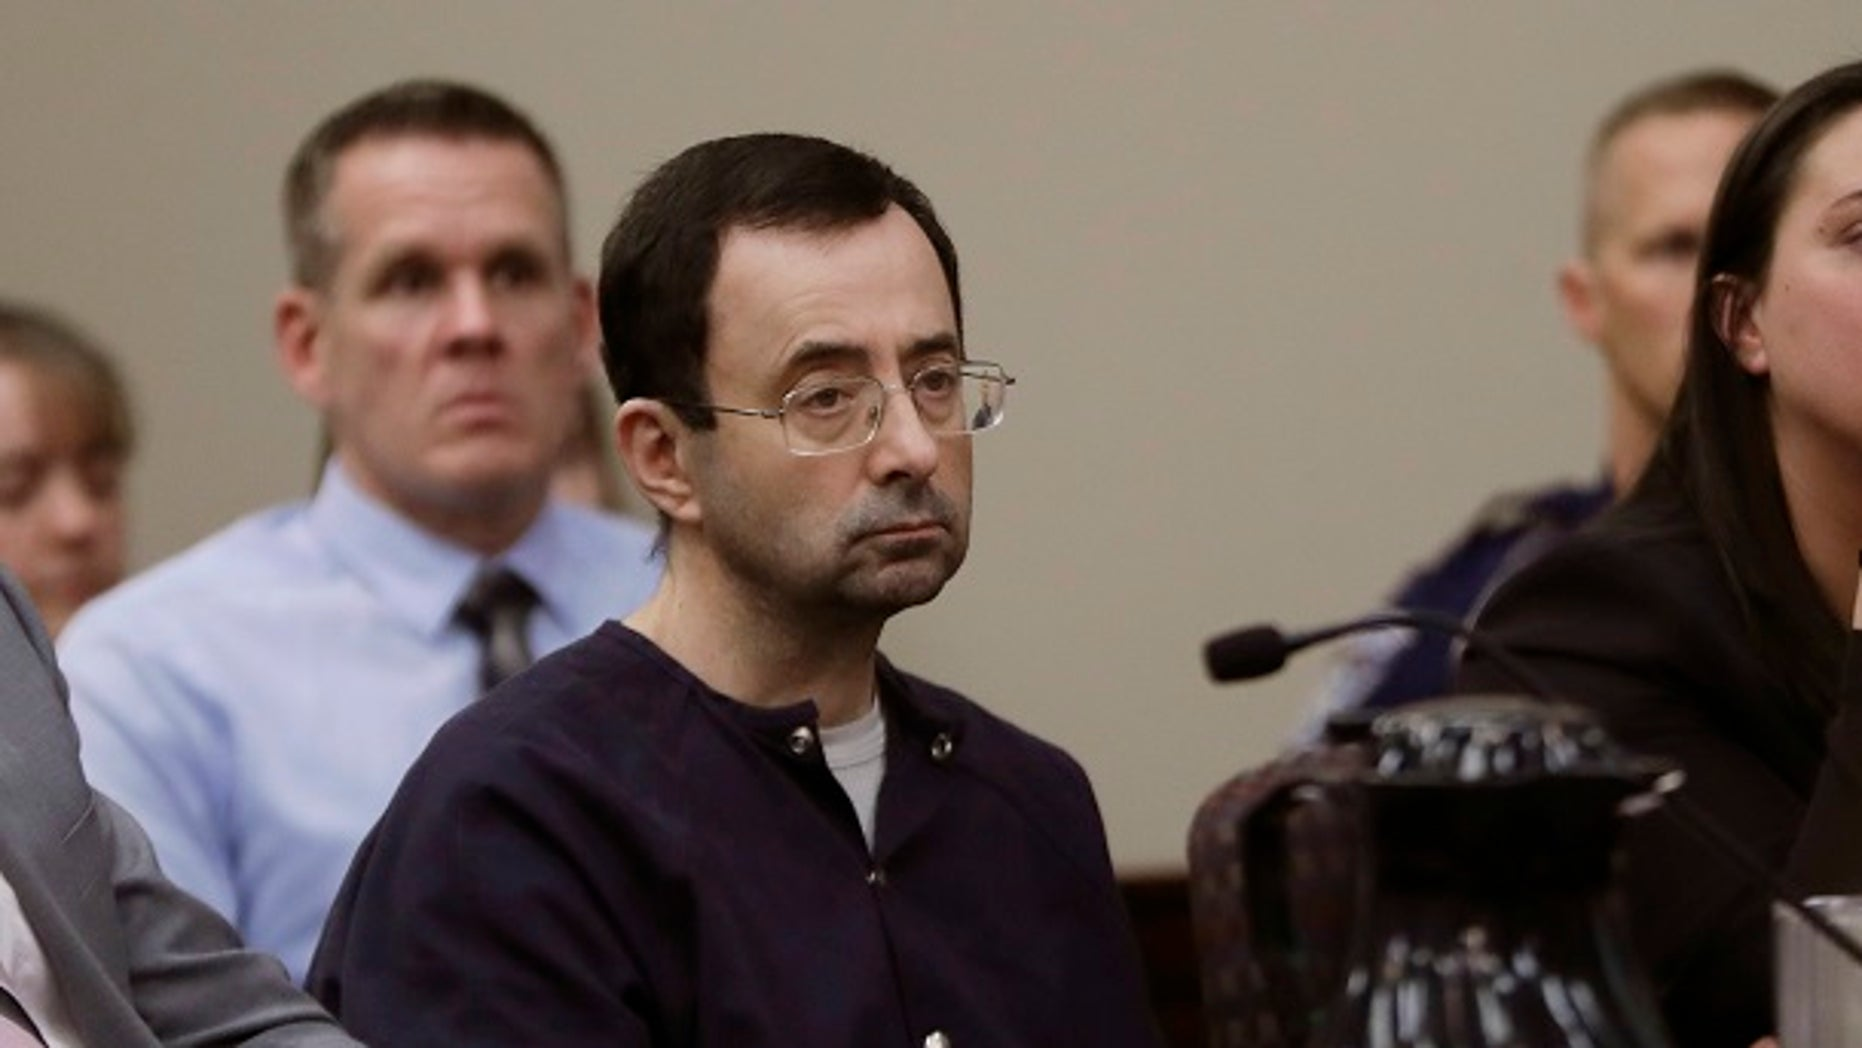 Larry Nassar has been accused of sexually abusing more than 250 women and girls over two decades.